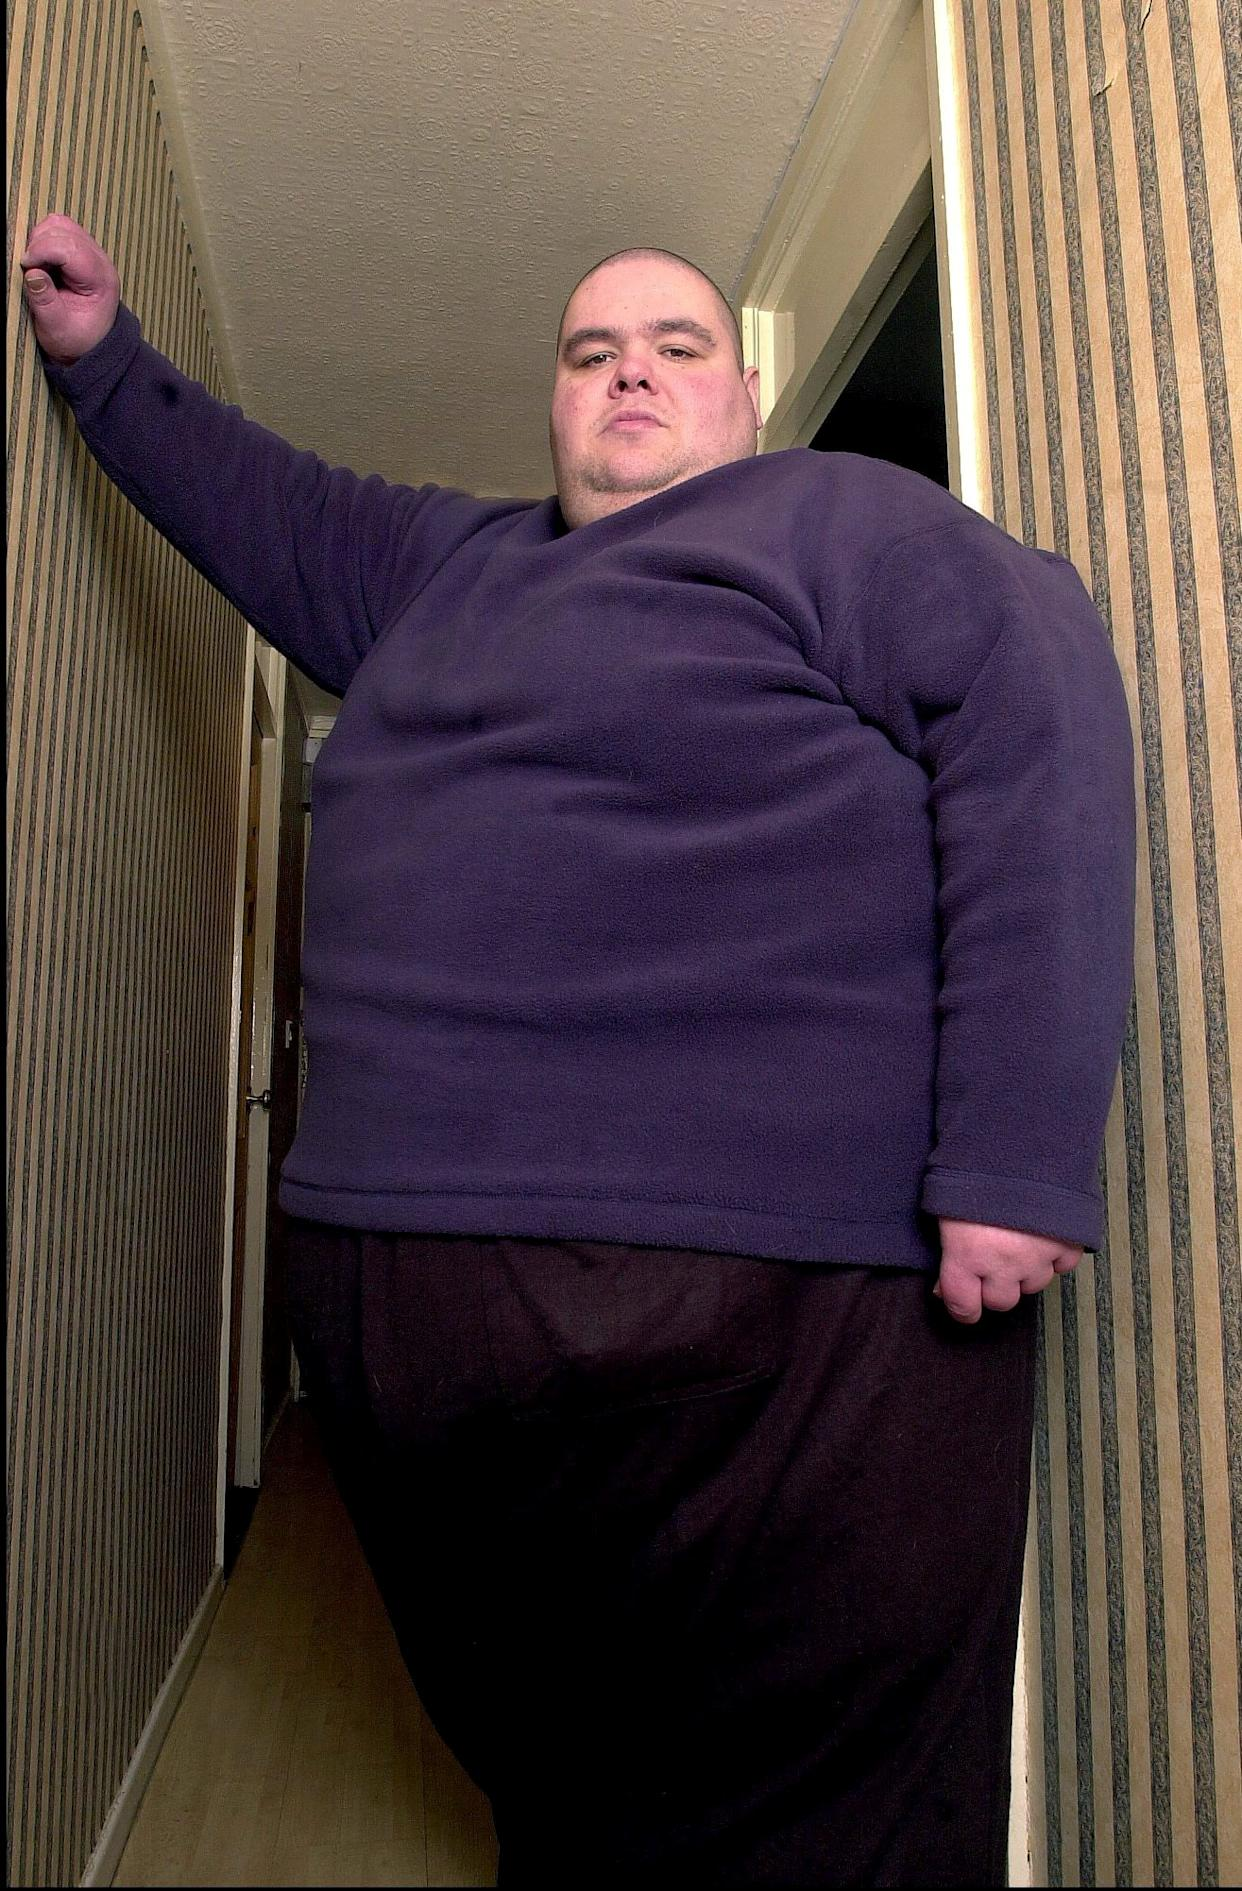 Once known as Britain's fattest man his weight peaked at 65 stone.At one point he consumed up to 29,000 calories and drinking up to 12 litres of fizzy drink in a day. (SWNS)